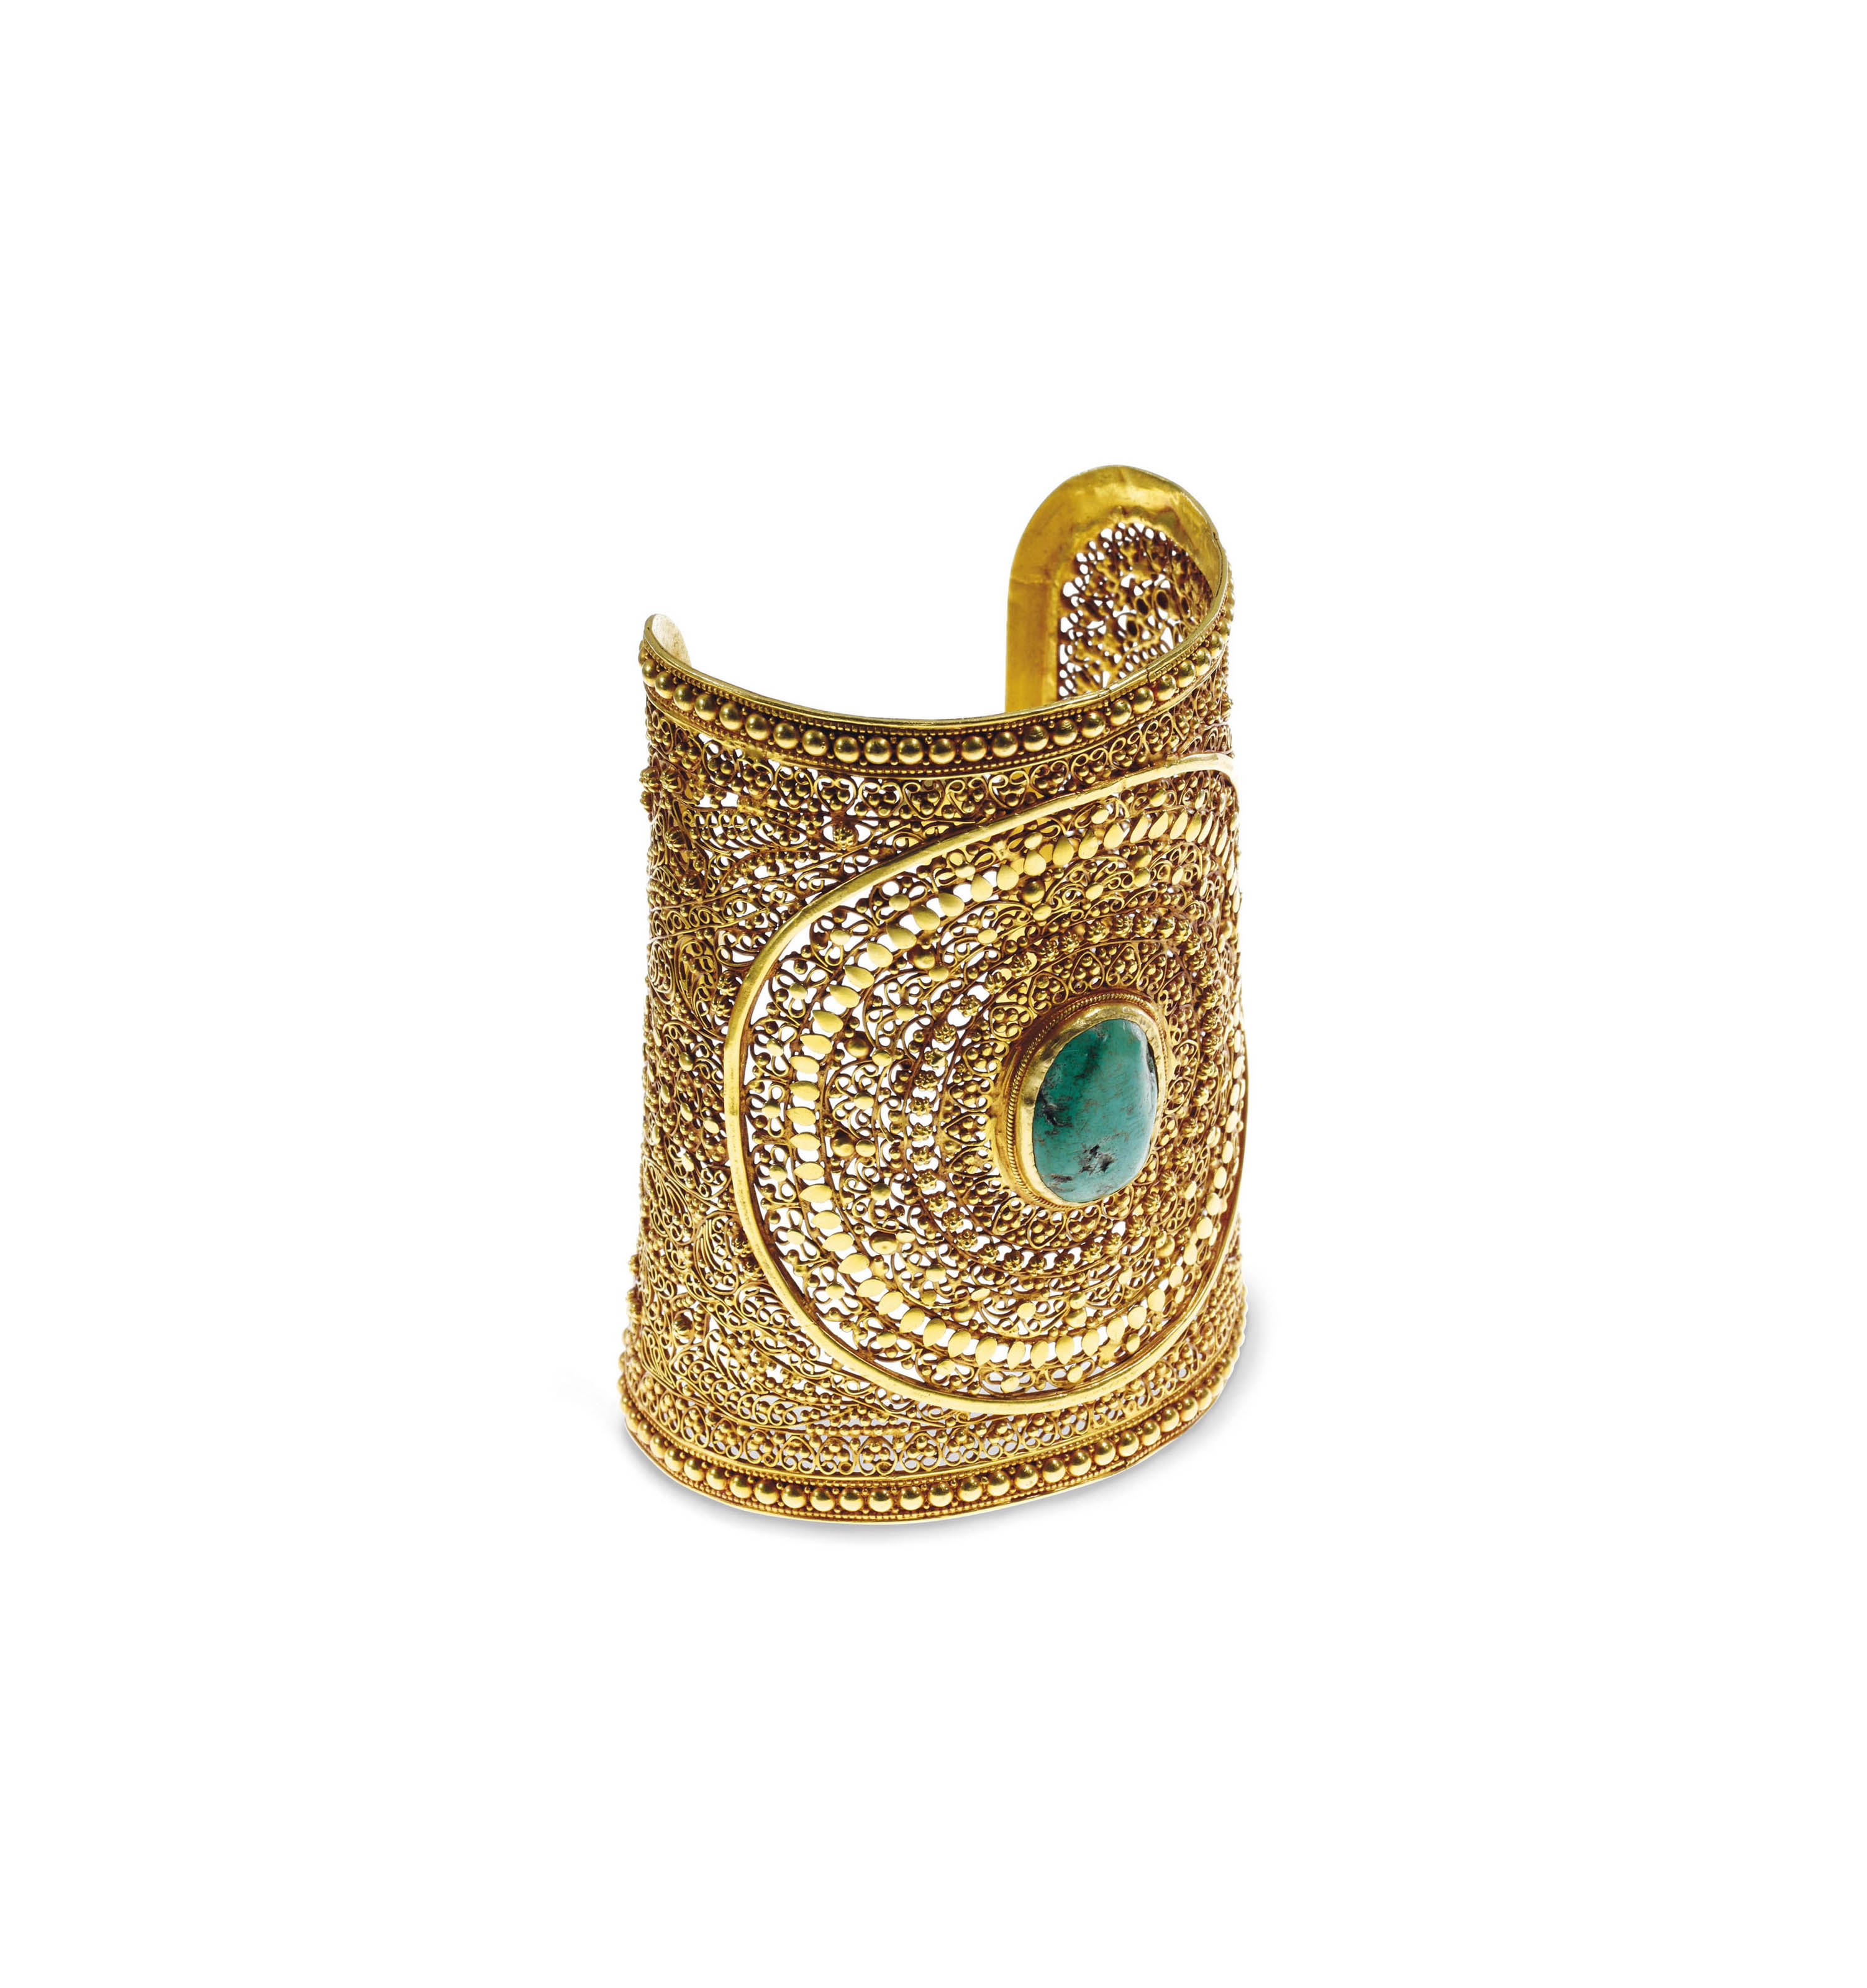 A TURQUOISE AND GOLD CUFF BRACELET